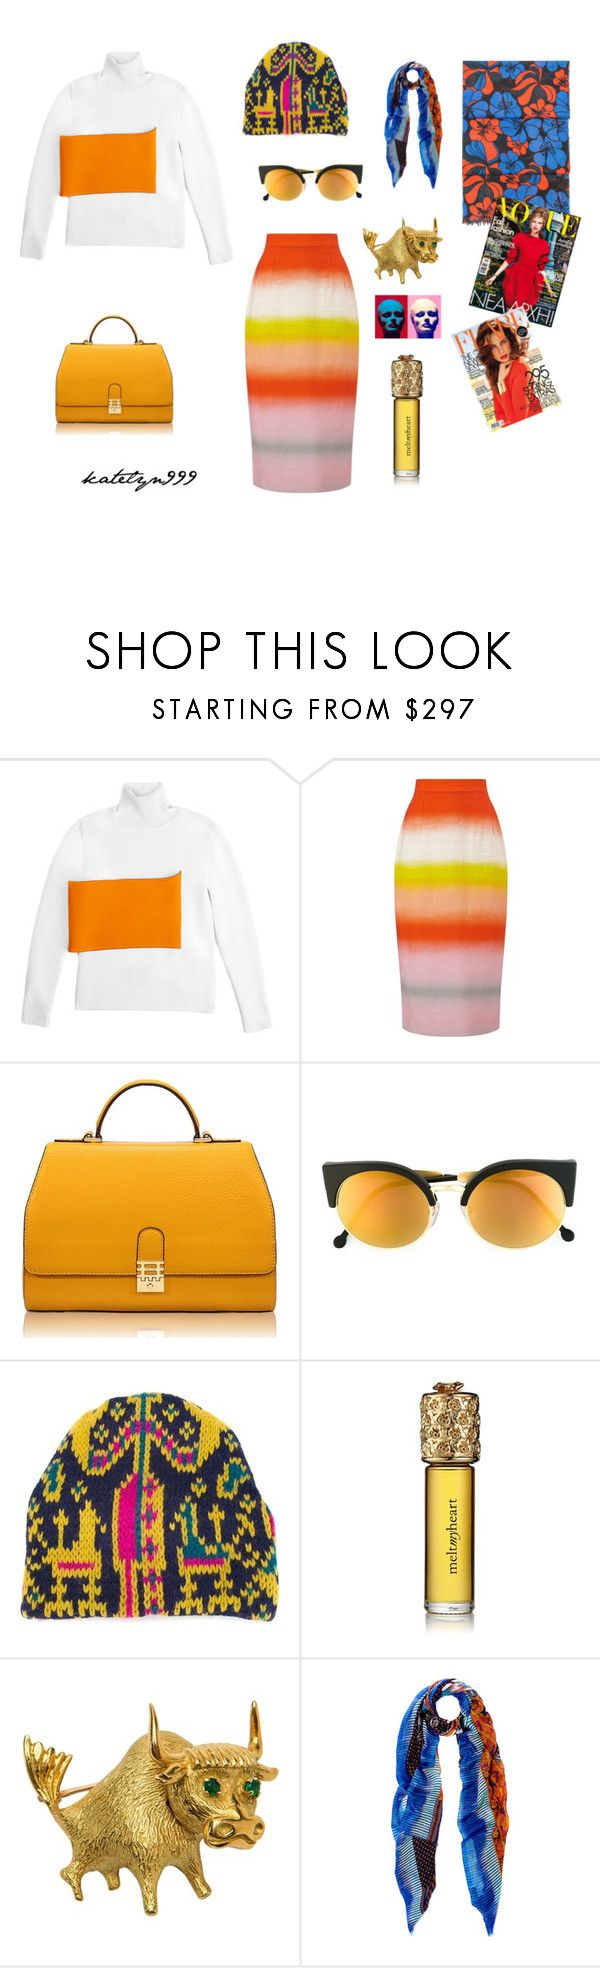 """""""Exotic feeling..."""" by katelyn999 ❤ liked on Polyvore featuring J.W. Anderson, Jonathan Saunders, Florian London, RetroSuperFuture, Tak.Ori, Etro and Marni"""